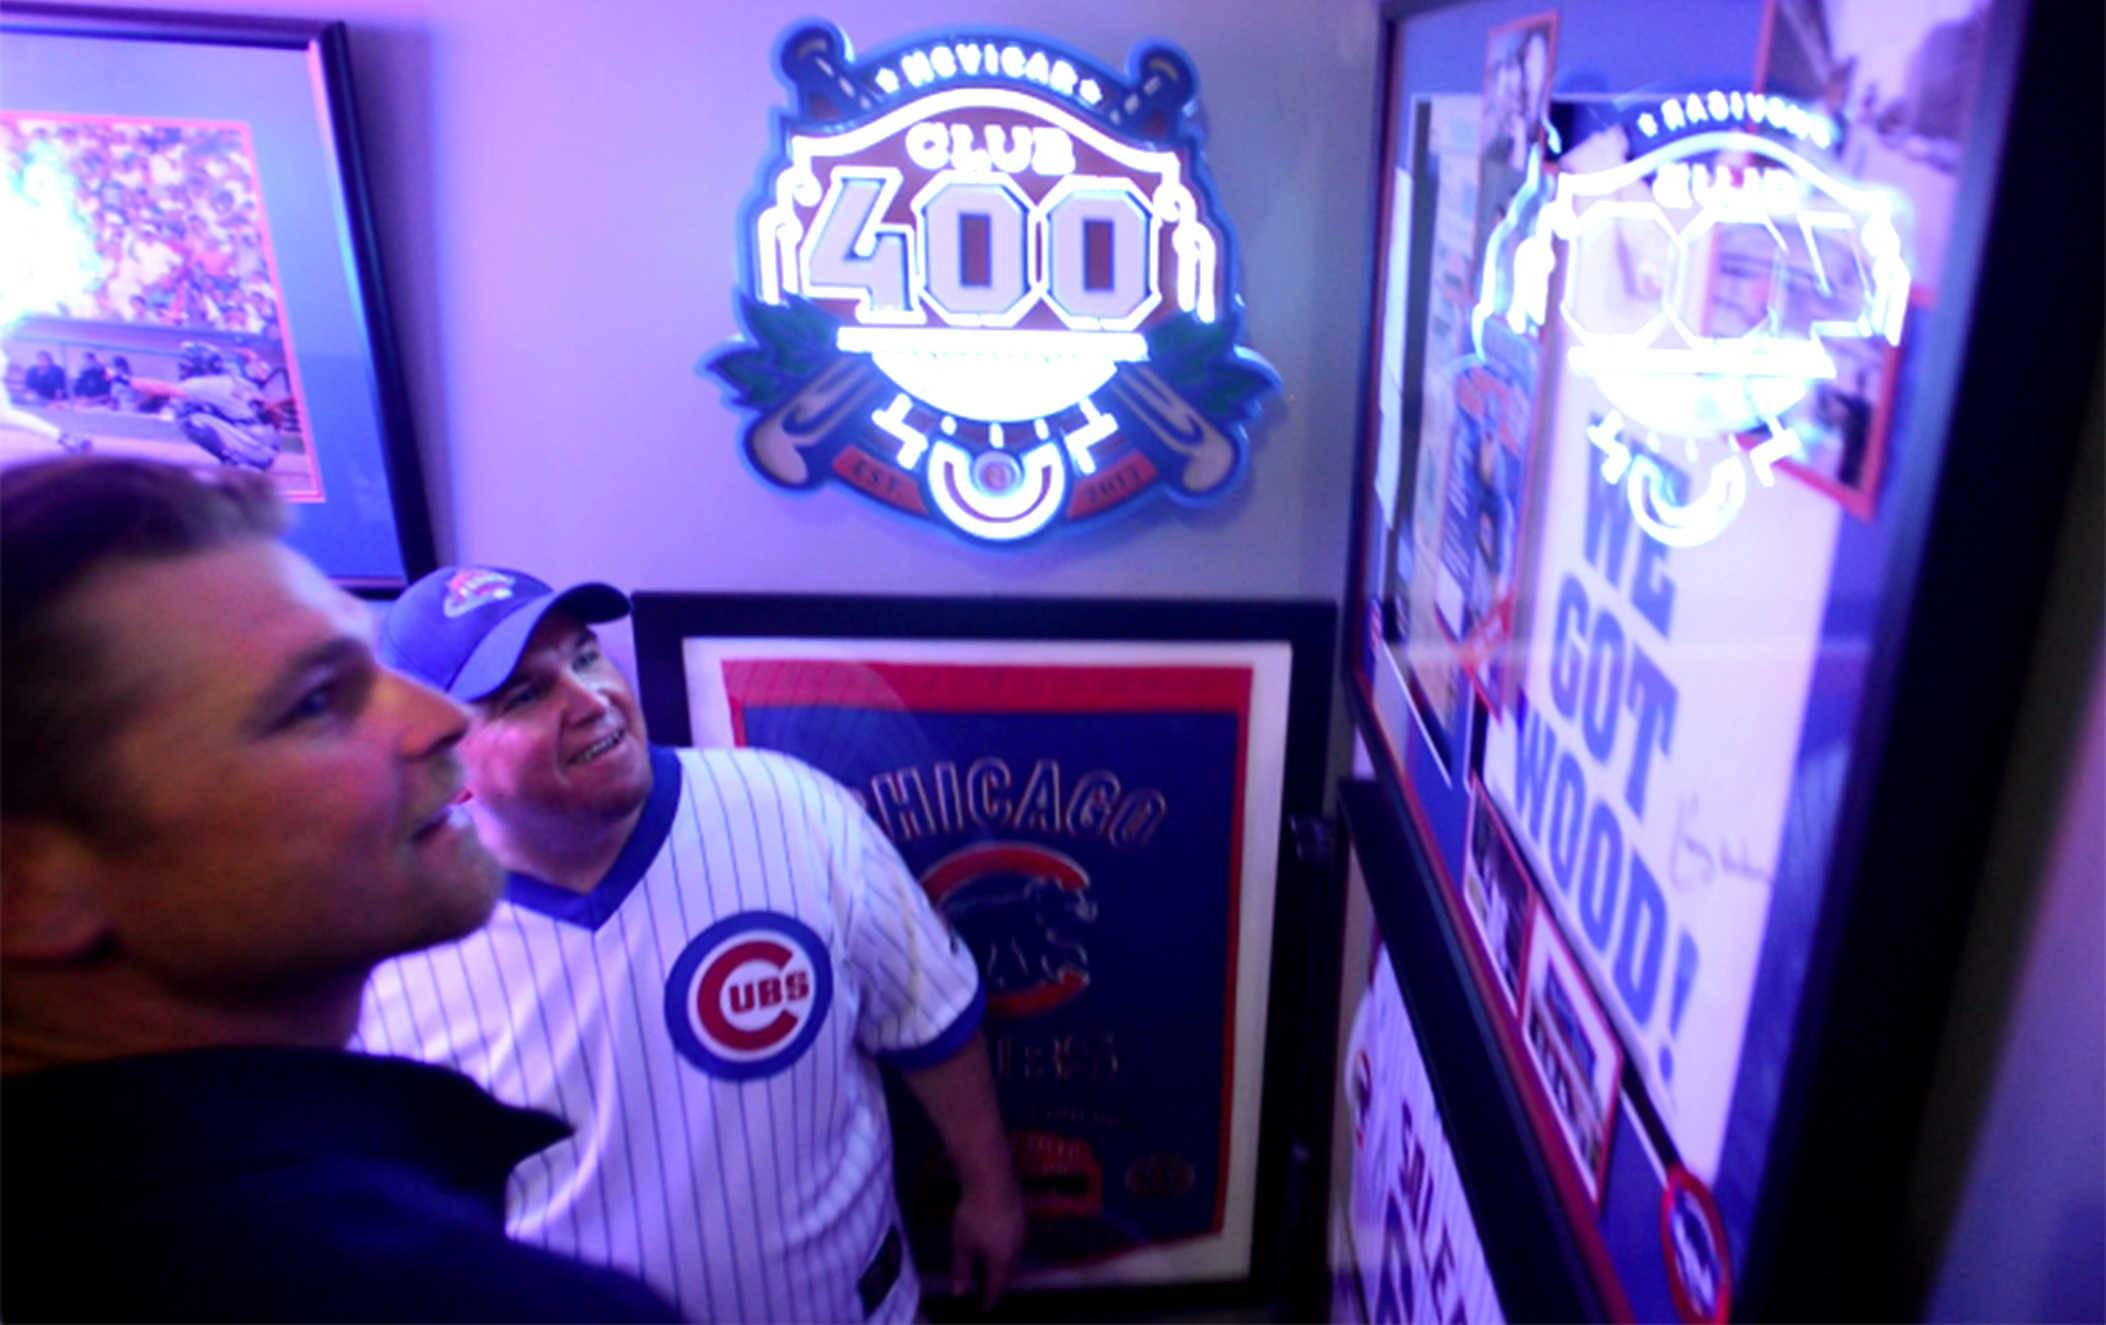 McVicar, center, introduces former Cubs pitcher Kerry Wood to a display of artifacts from Wood's playing days.